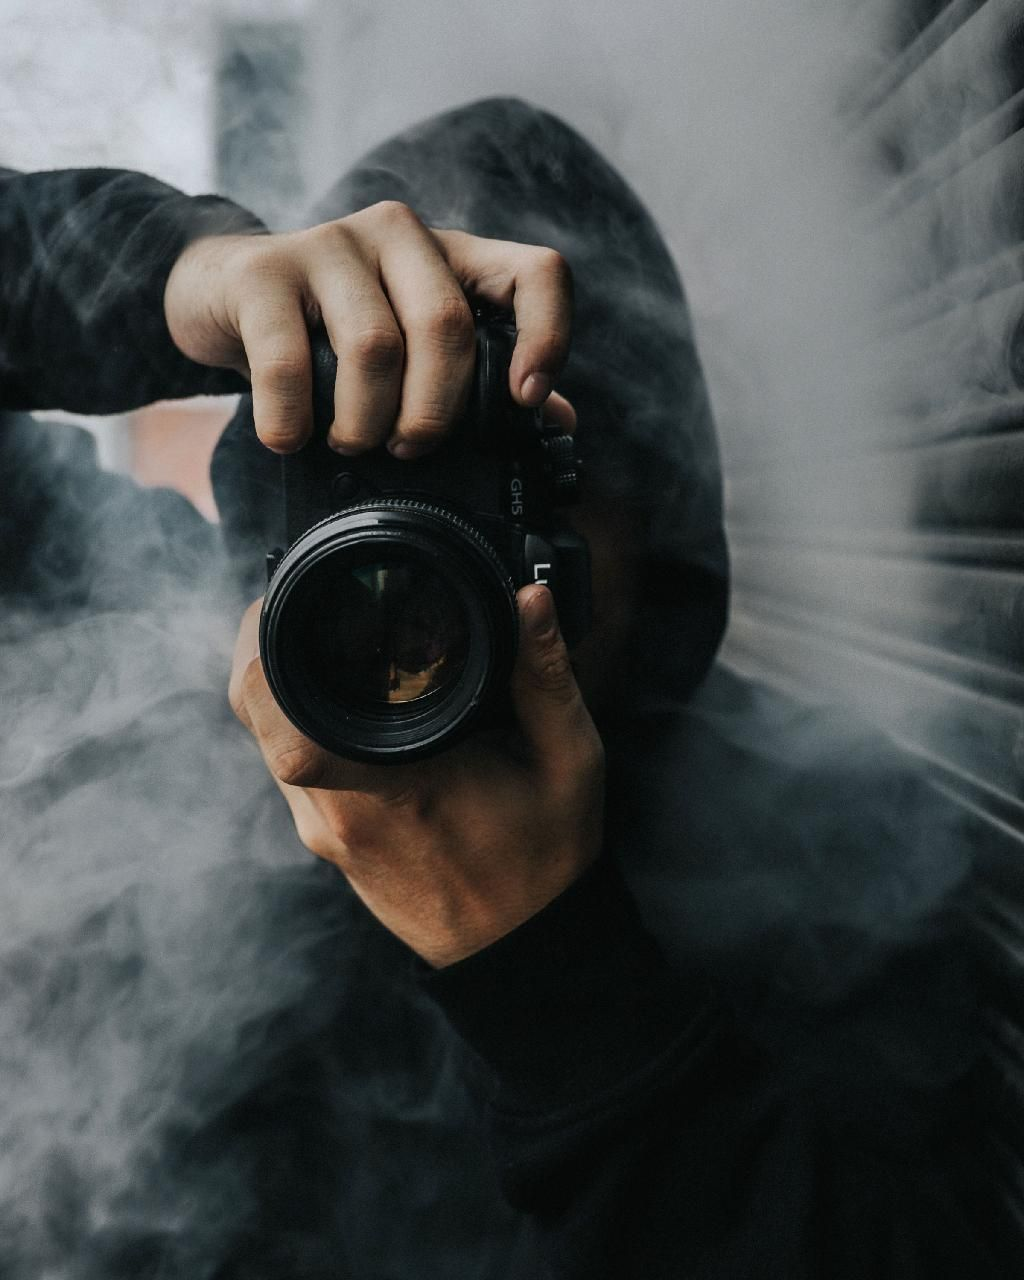 Download Dslr Boy Wallpaper By Undercovergiminy 4b Free On Zedge